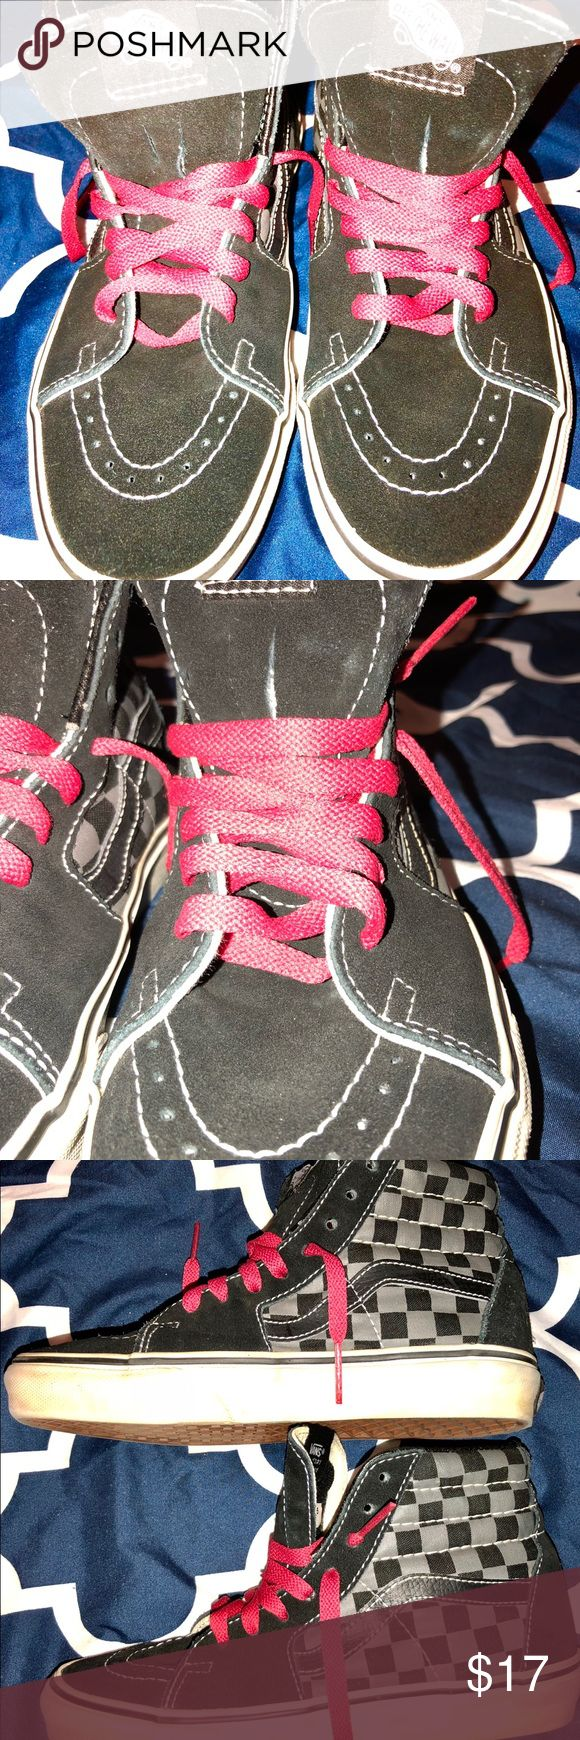 Vans high tops Vans high tops.  Gently used.  Shows minimal wear.  Men's size 4.5 or a woman's size 6. Vans Shoes Sneakers